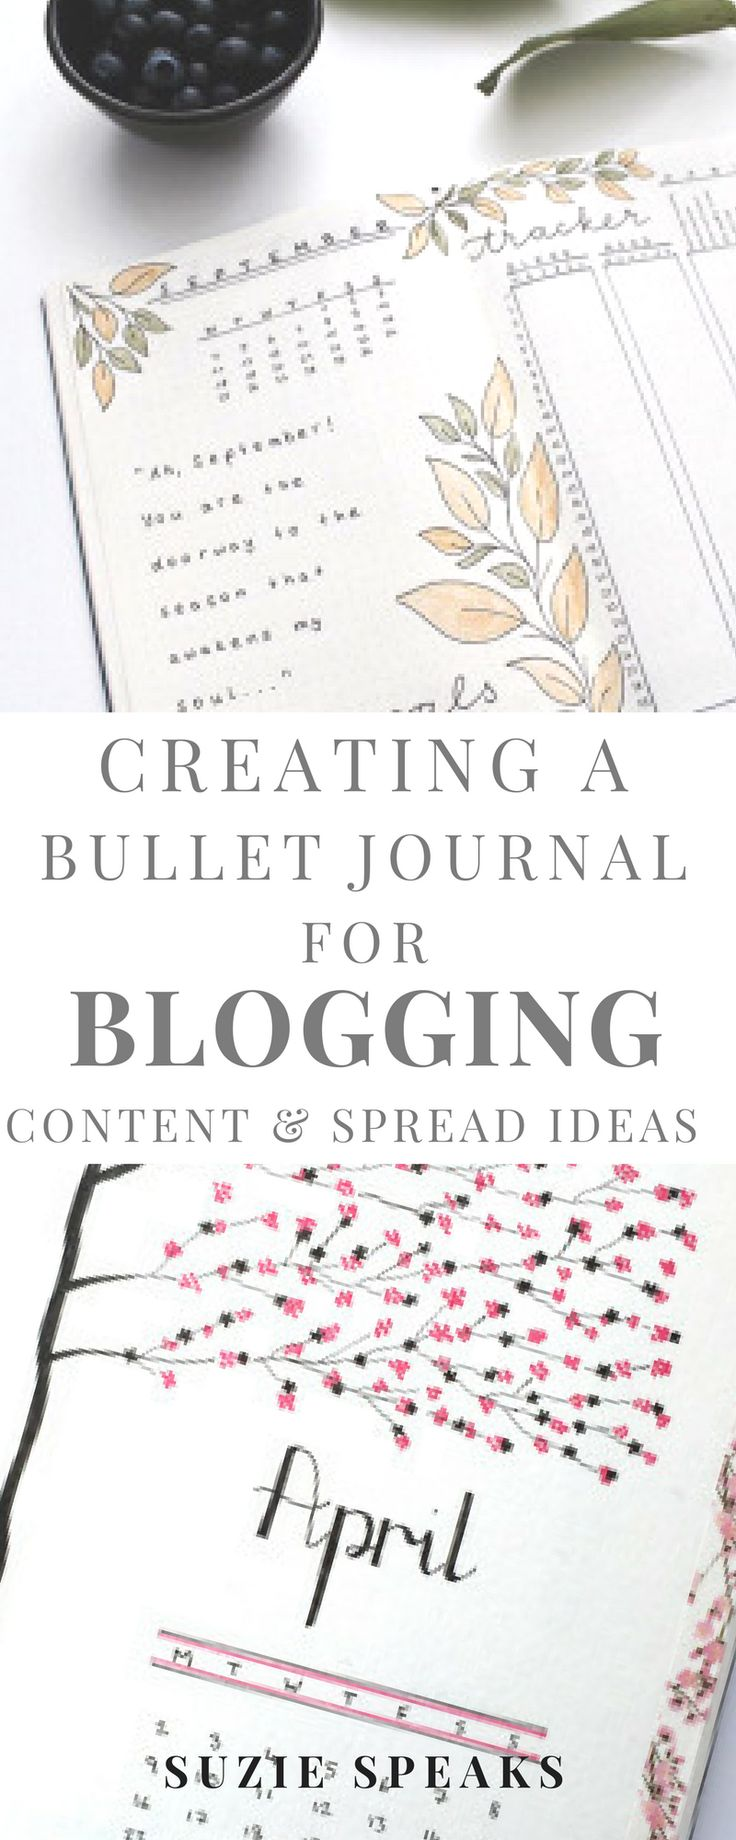 How to create a Bullet Journal for blogging - here's some ideas for creating weekly trackers and spreads #bulletjournal #bujo